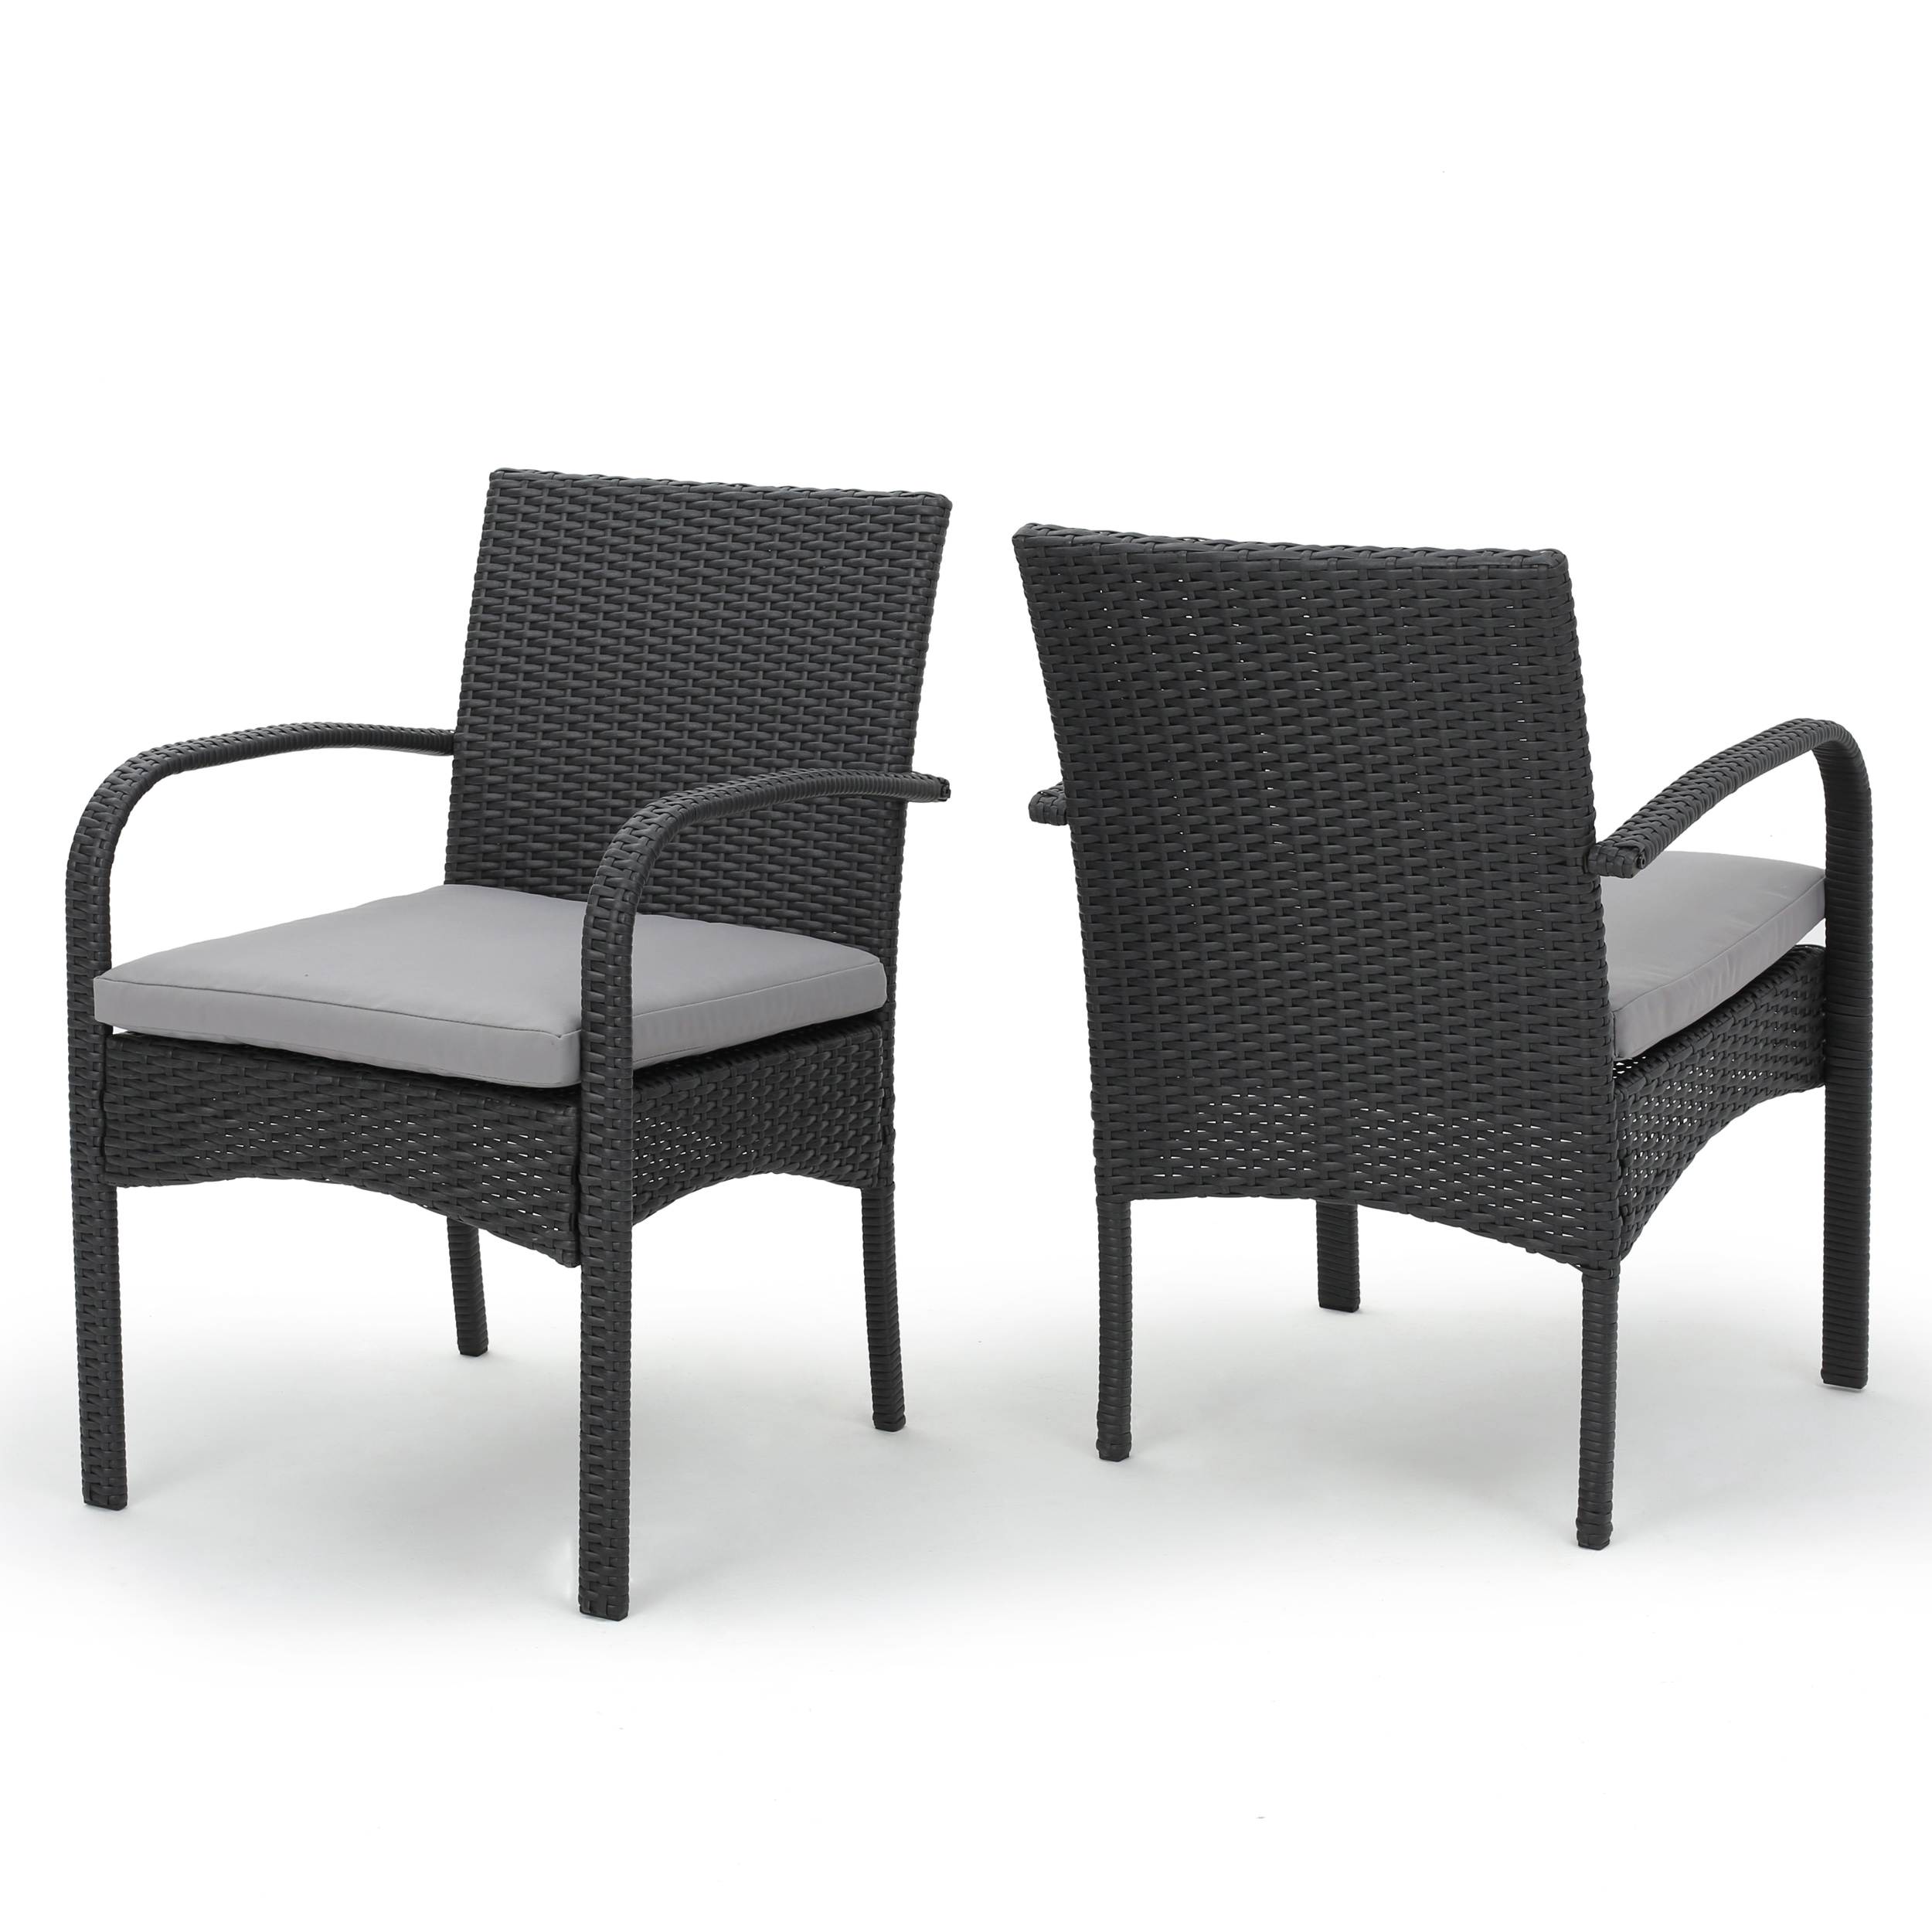 El Capitan Outdoor Wicker Dining Chairs with Cushions, Set of 2, Grey